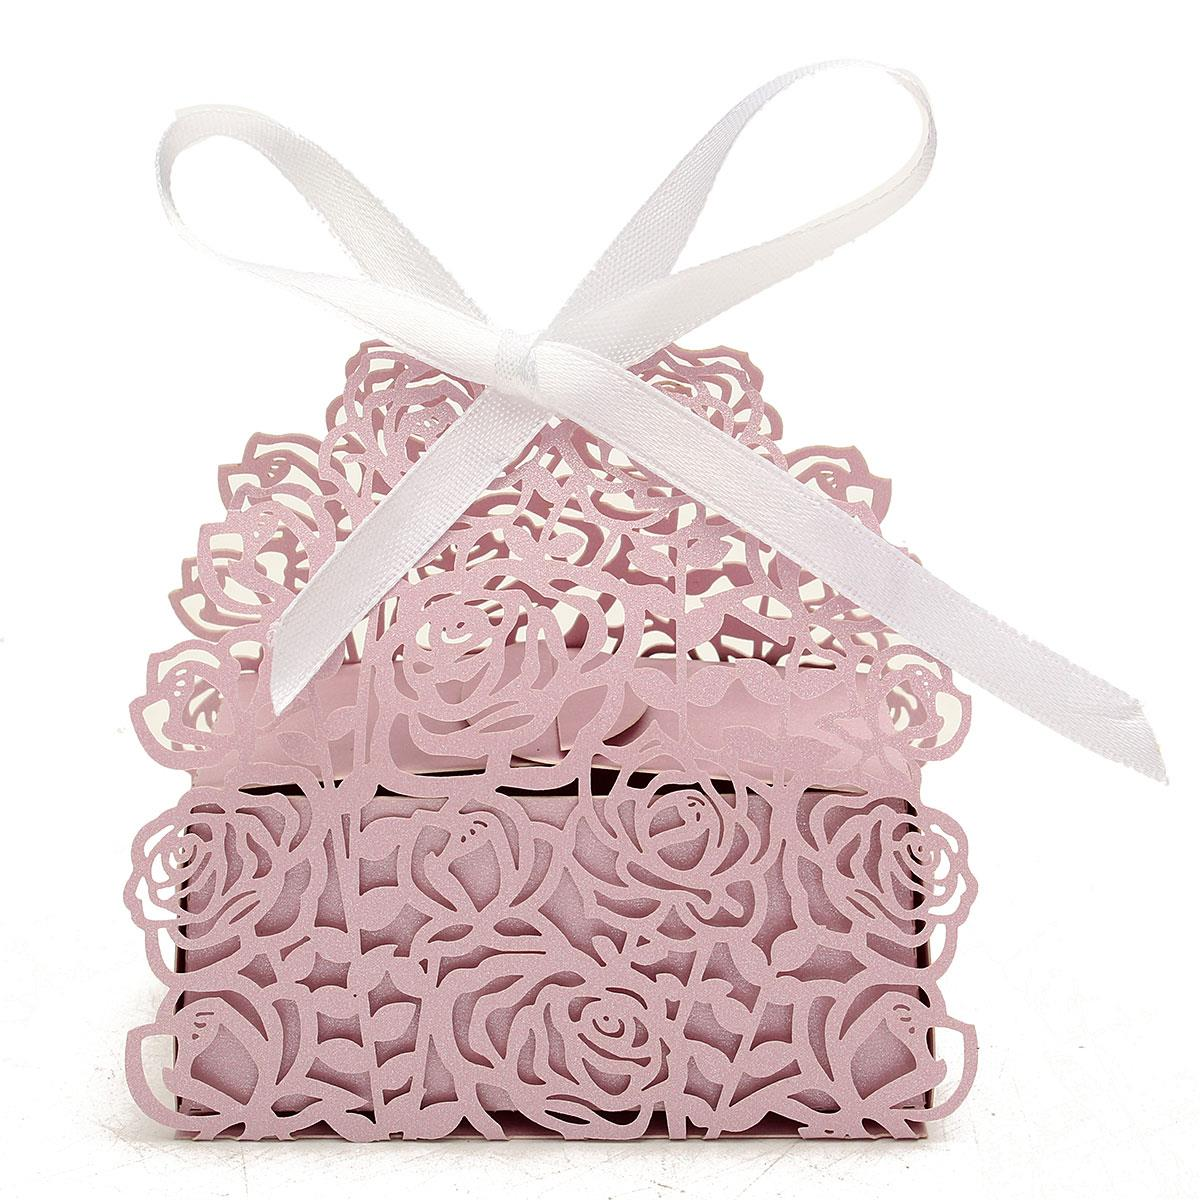 12Pcs Rose Laser Cut Candy Gift Boxes Ribbon Wedding Party Event ...